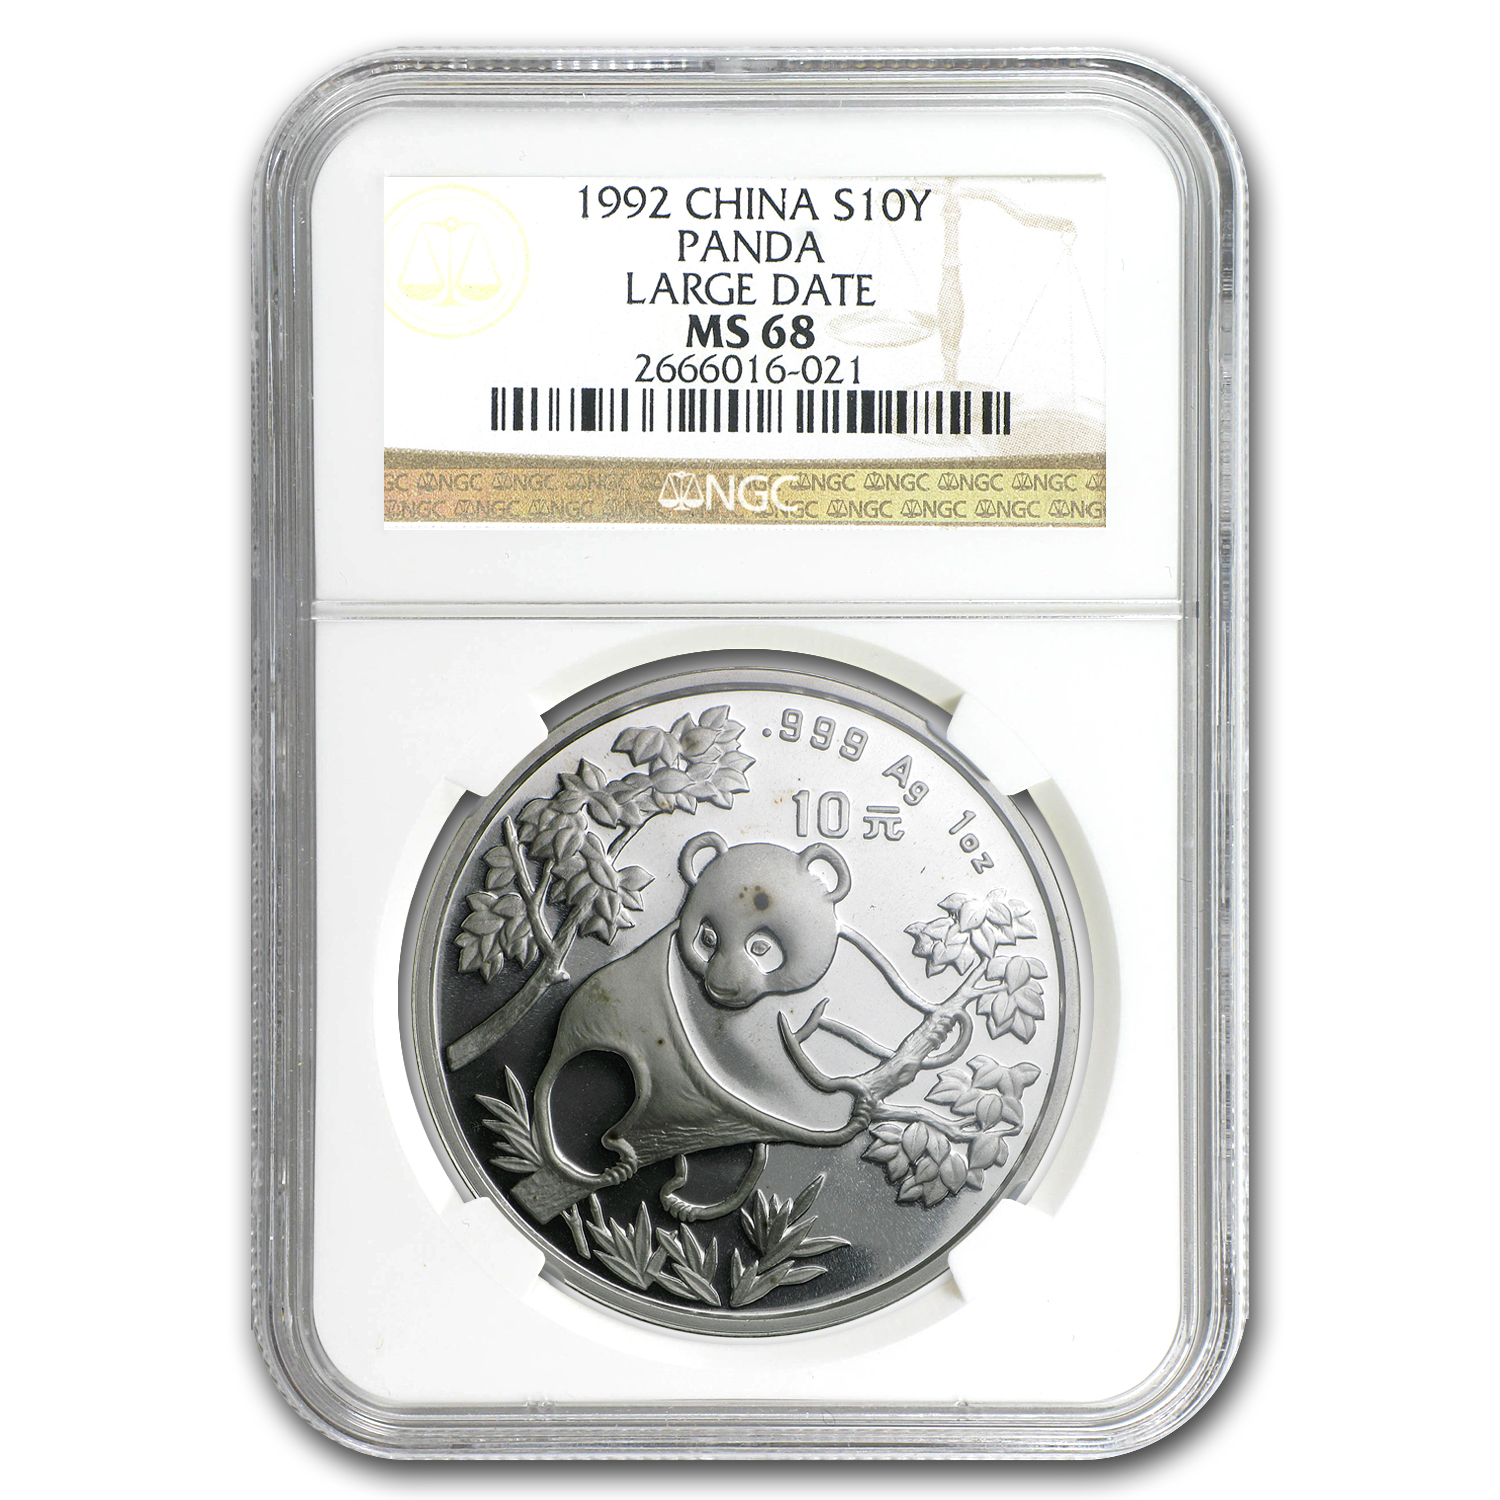 1992 China 1 oz Silver Panda MS-68 NGC (Large Date)